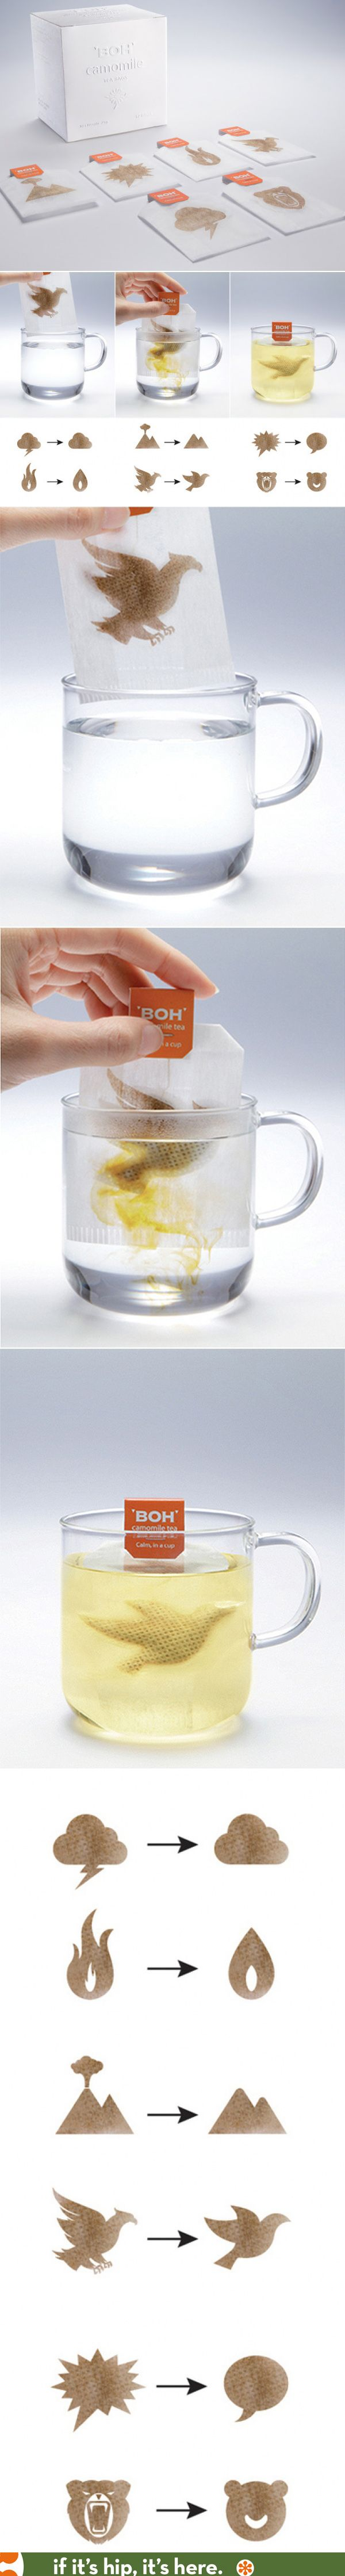 A clever way to market 'calm' for BOH Camomile tea bags.